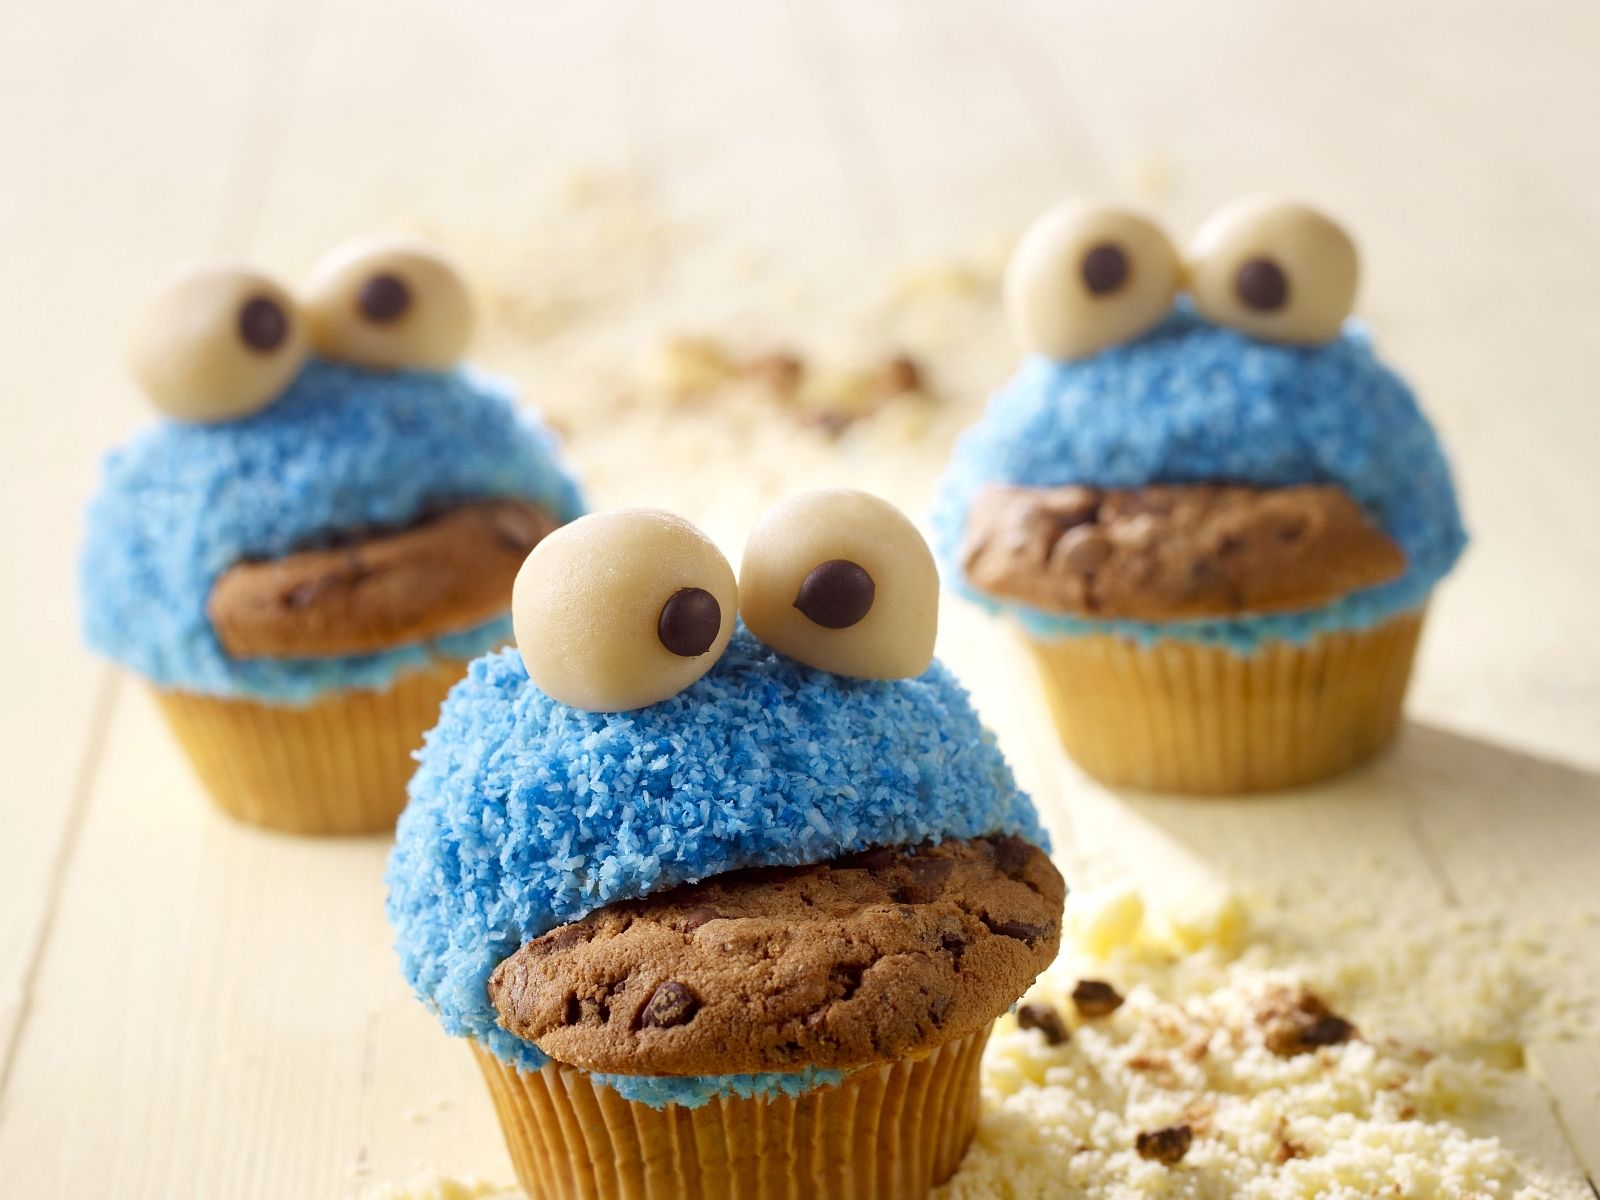 lustige monster muffins rezept monster muffins monster und muffins. Black Bedroom Furniture Sets. Home Design Ideas